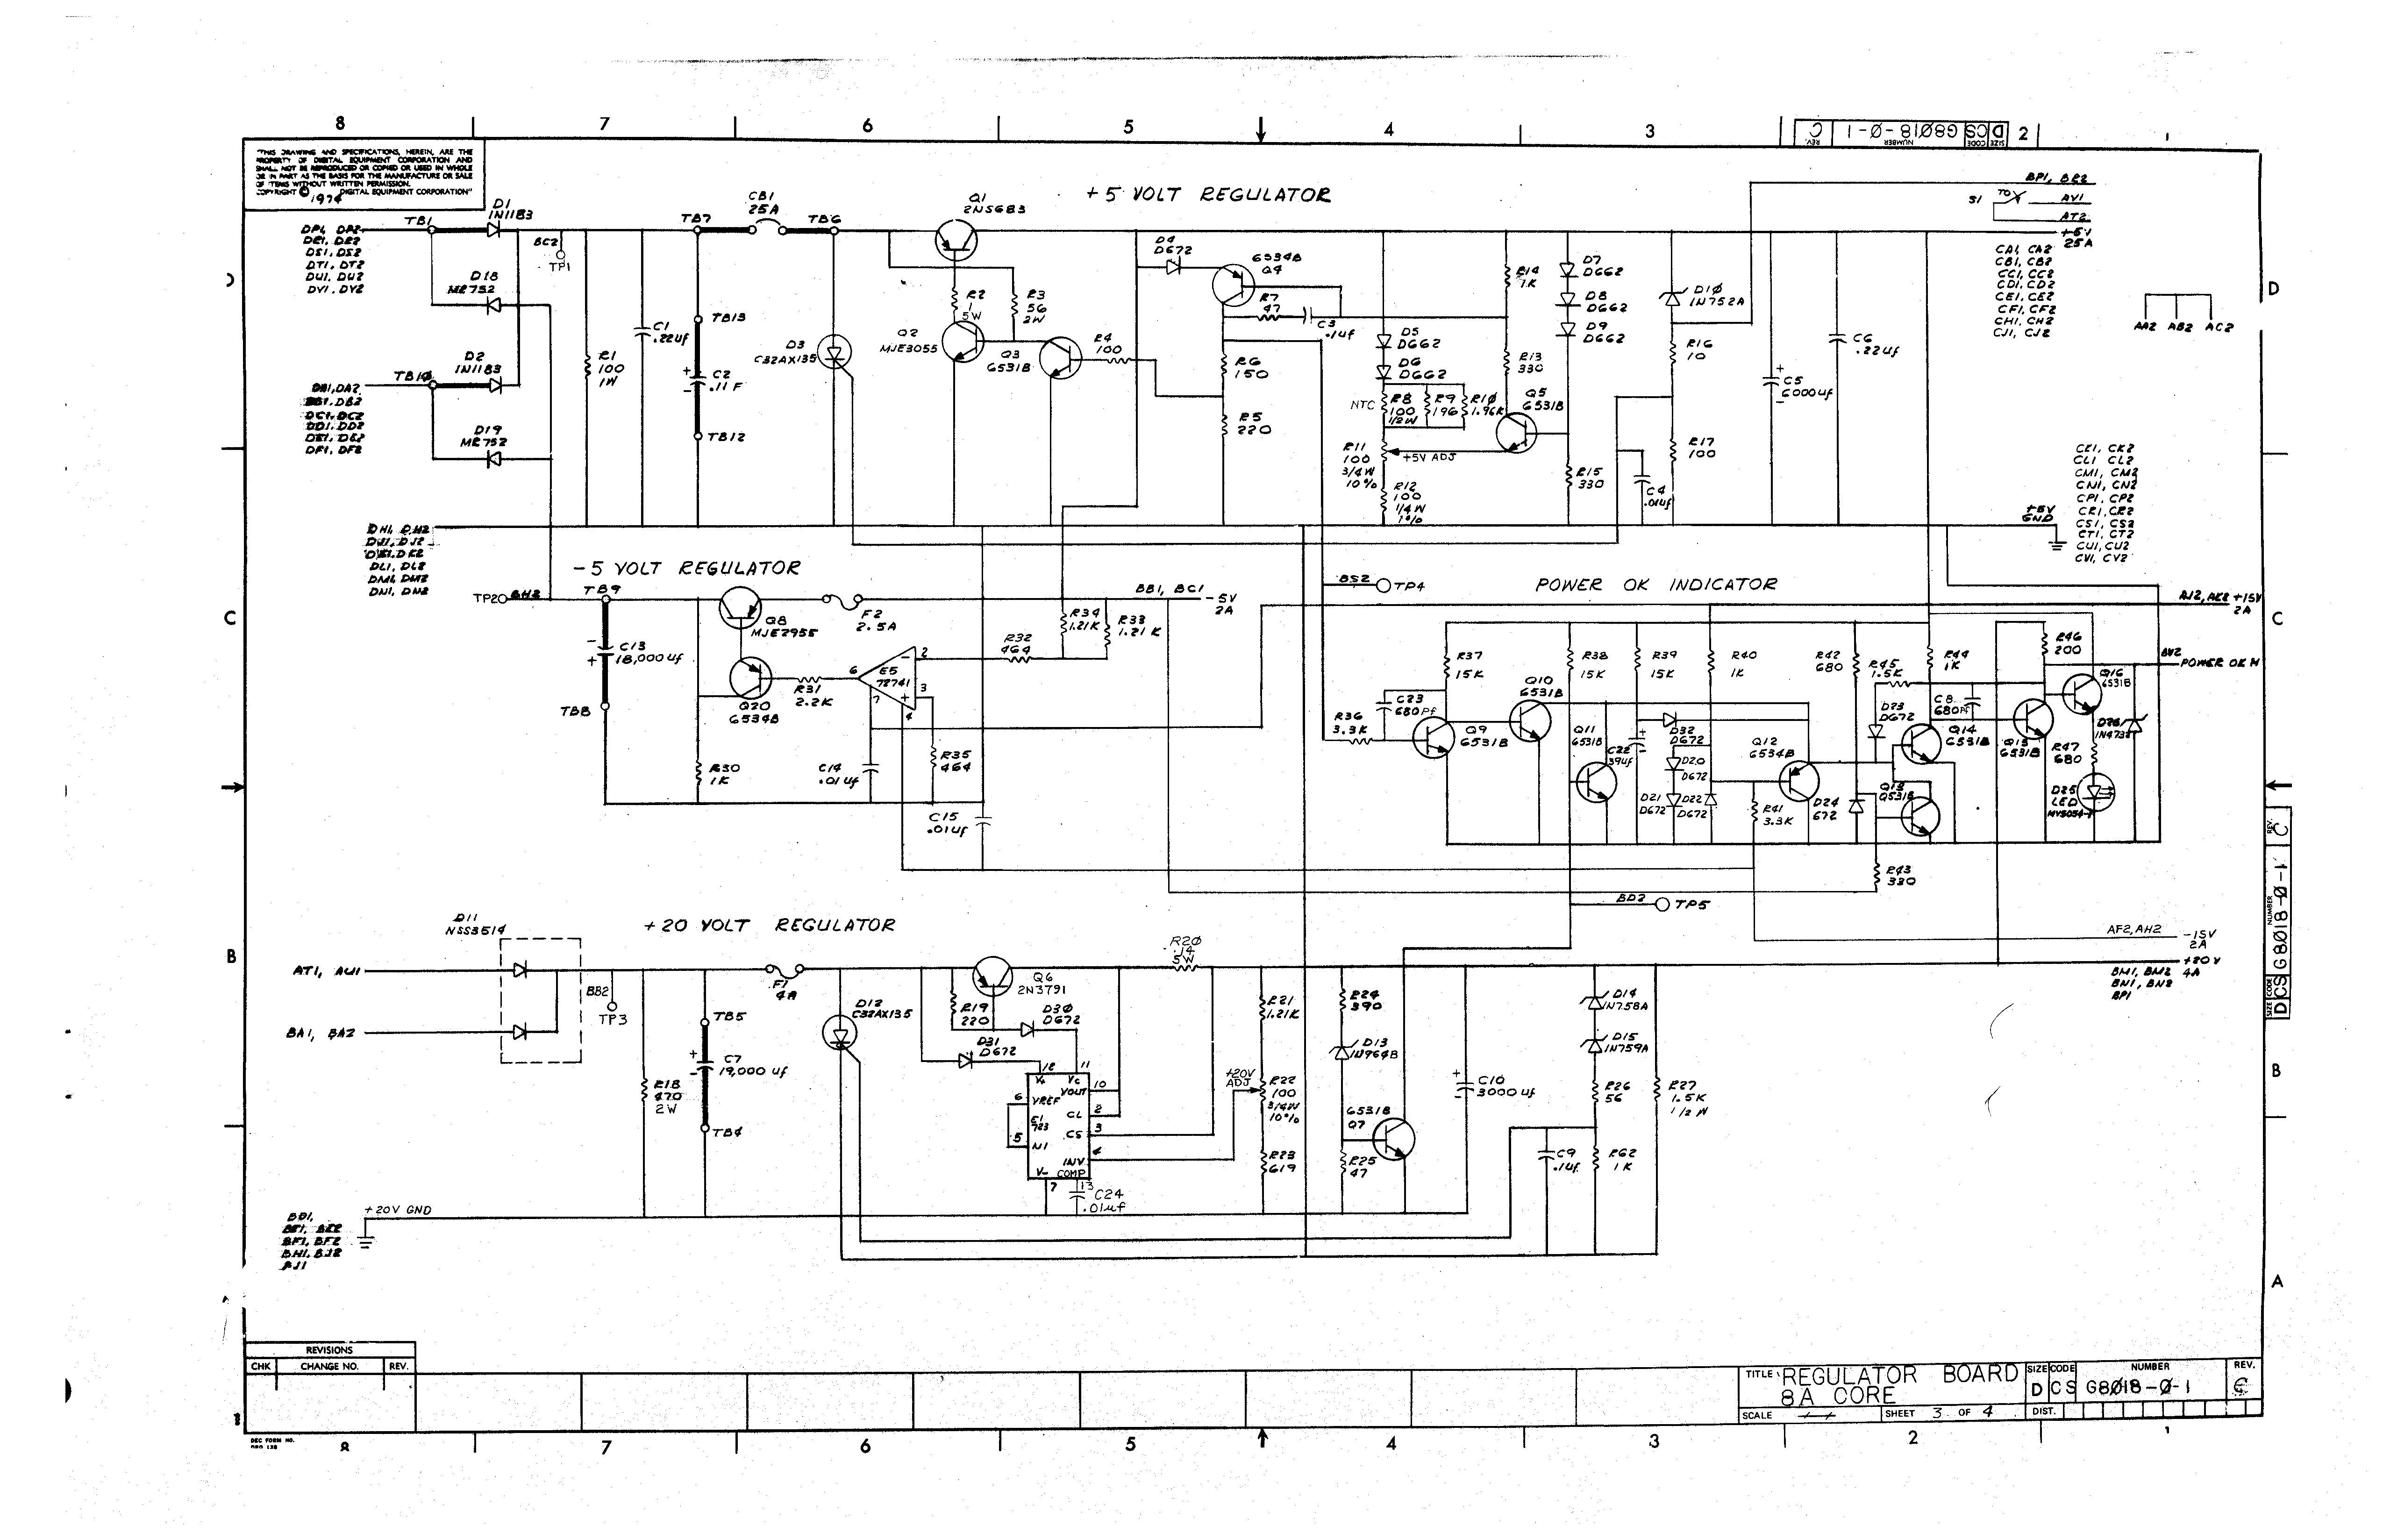 pdp 8 schematics  u2013 the wiring diagram  u2013 readingrat net